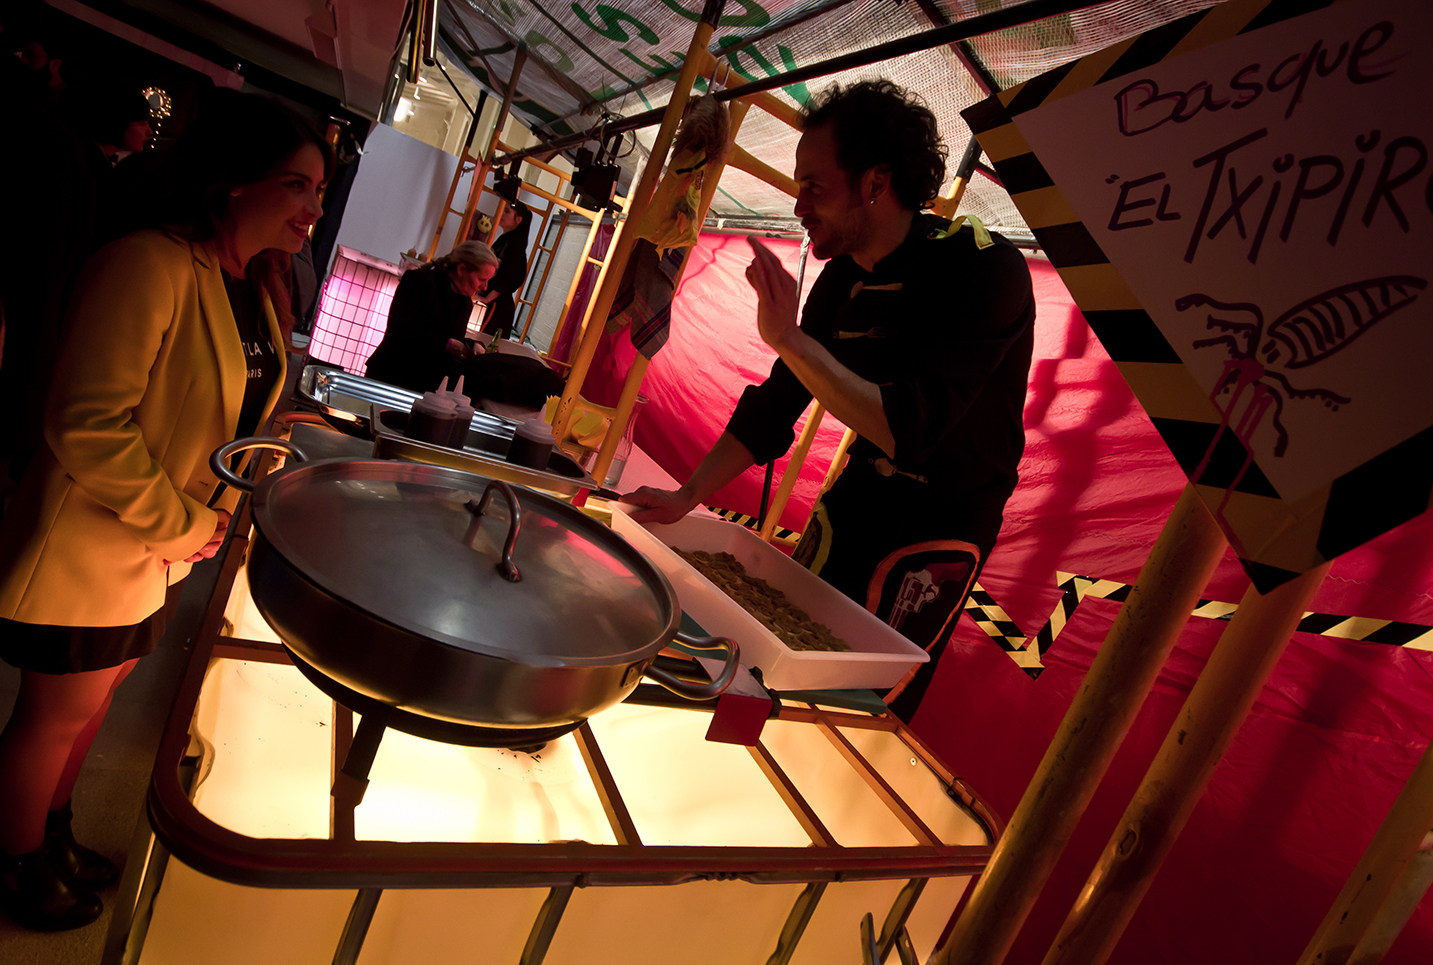 00-Eat-Art-JustMad5-Guerrilla-Food-Sound-System-web